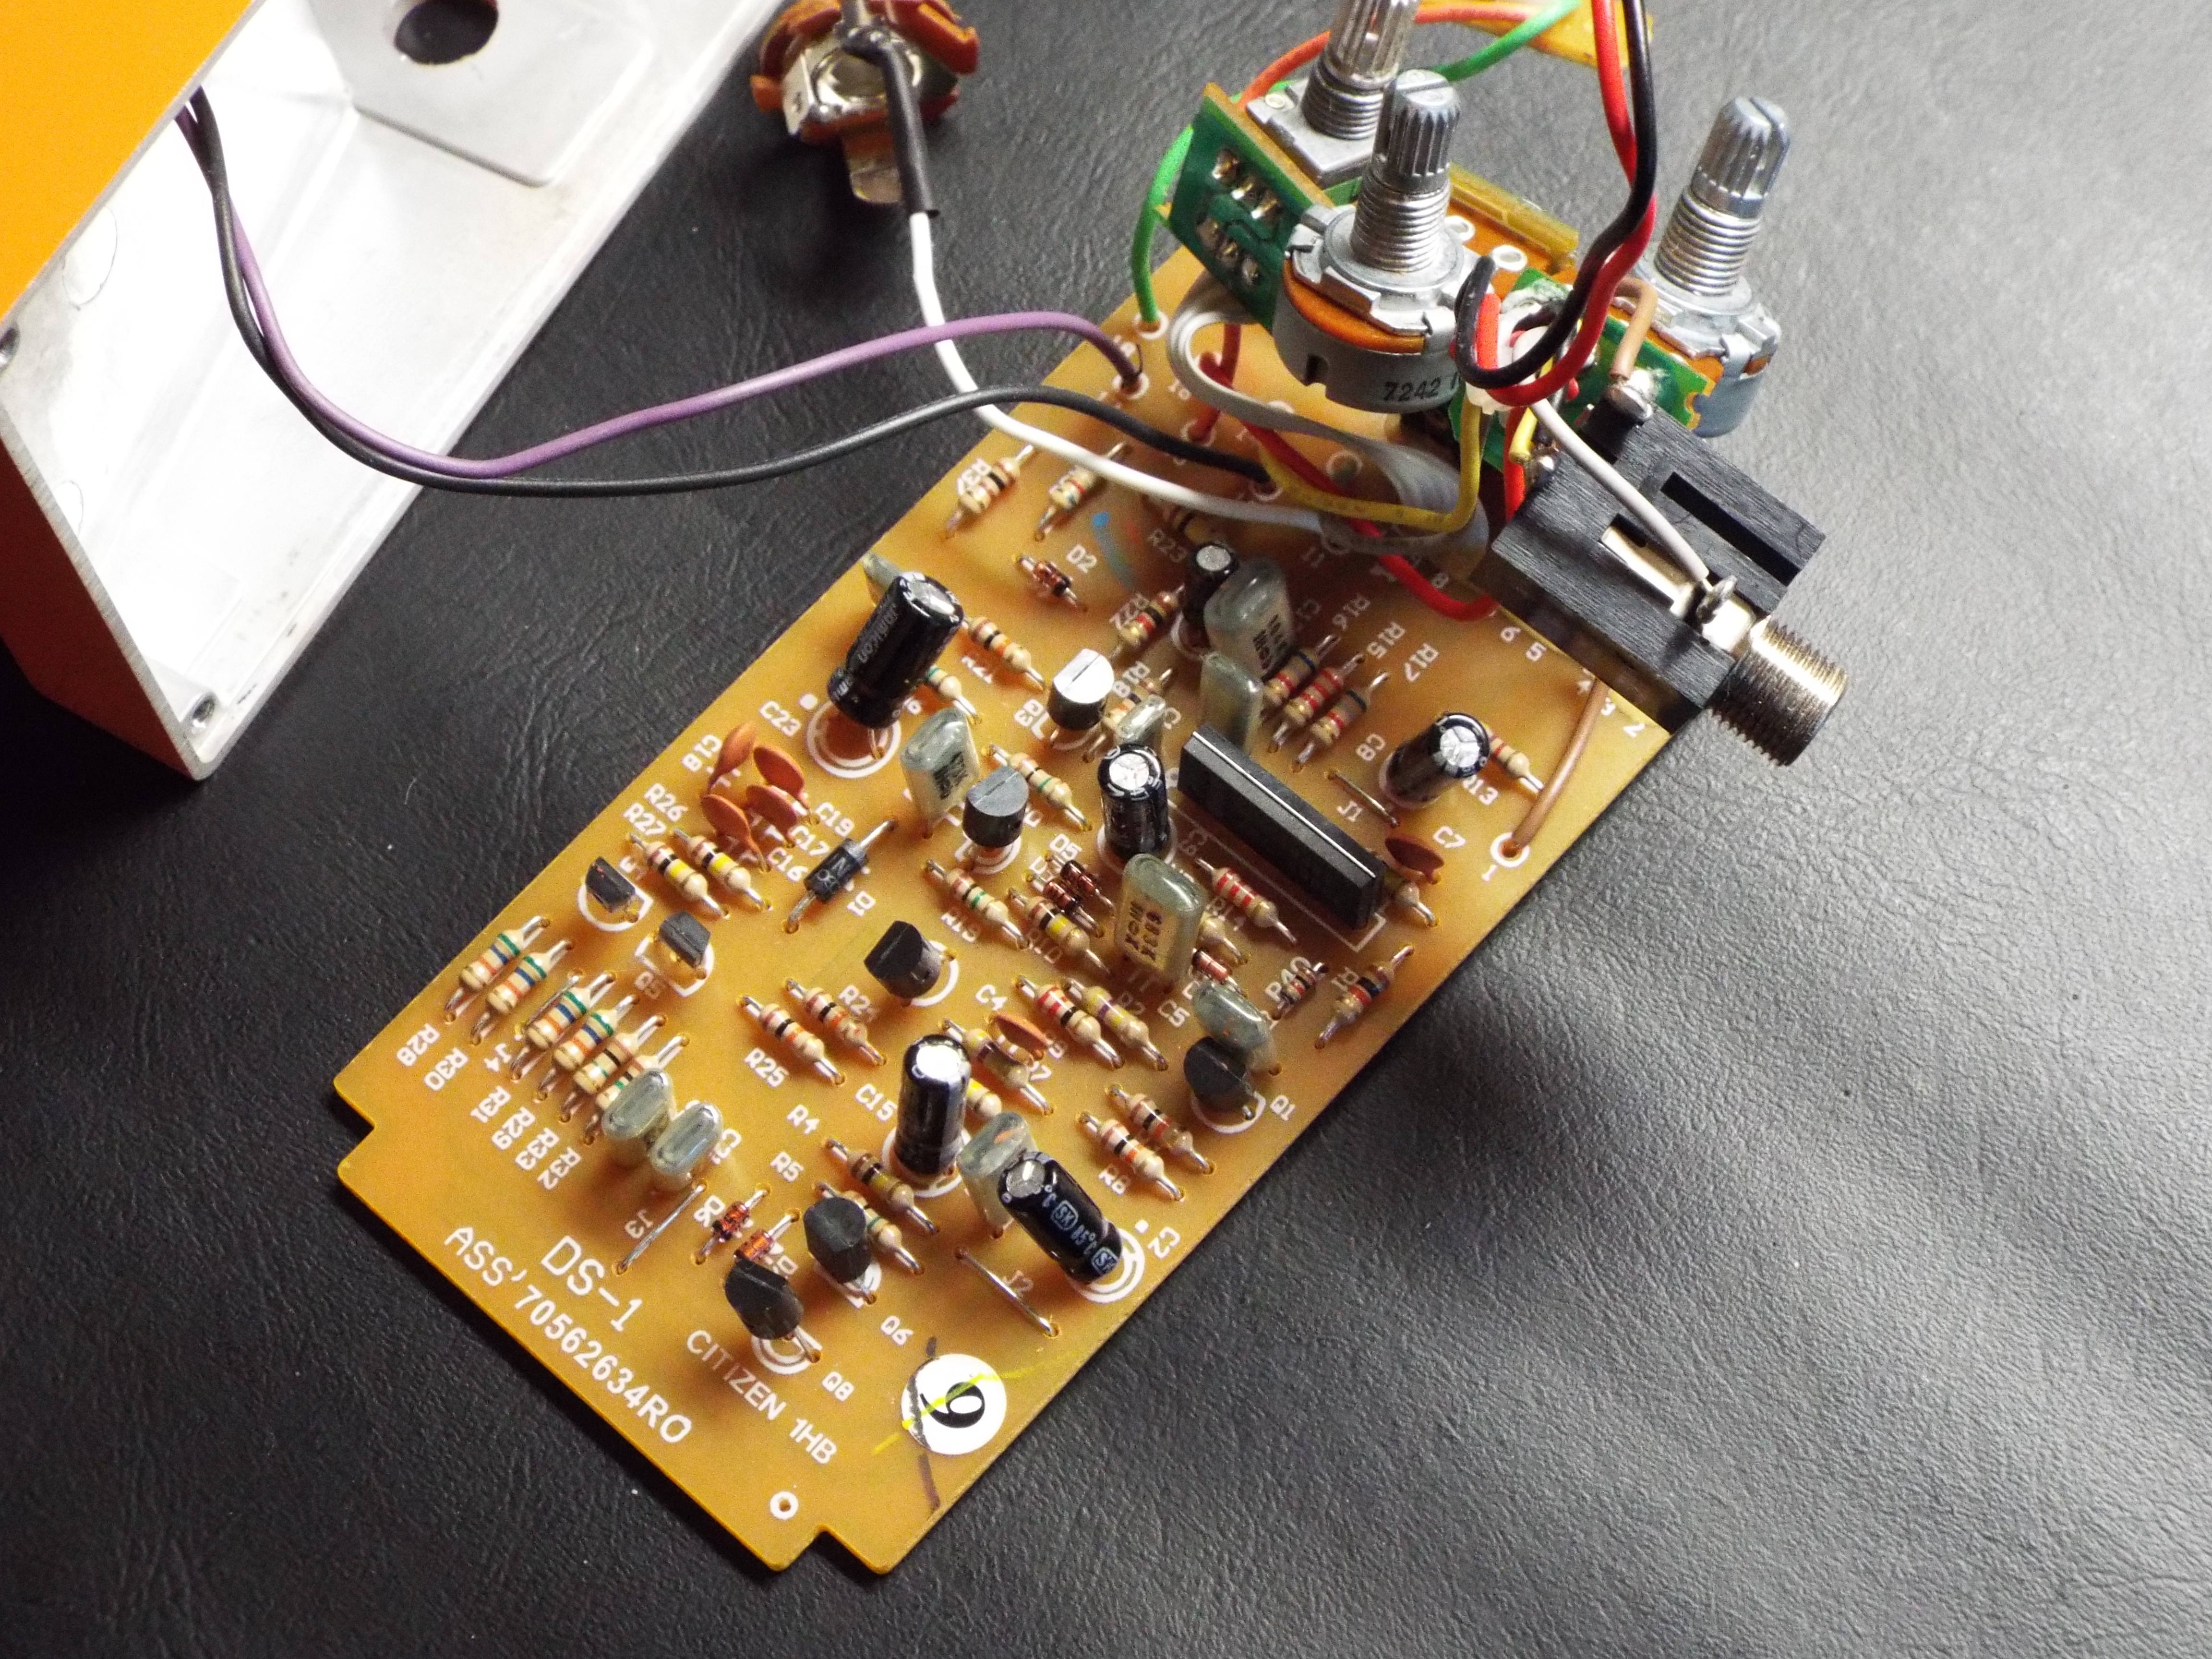 Fixing And Then Modding A Boss Ds 1 Helping You Find Your Tone 4 Jack Wiring To Circuit Board One Final Look At The